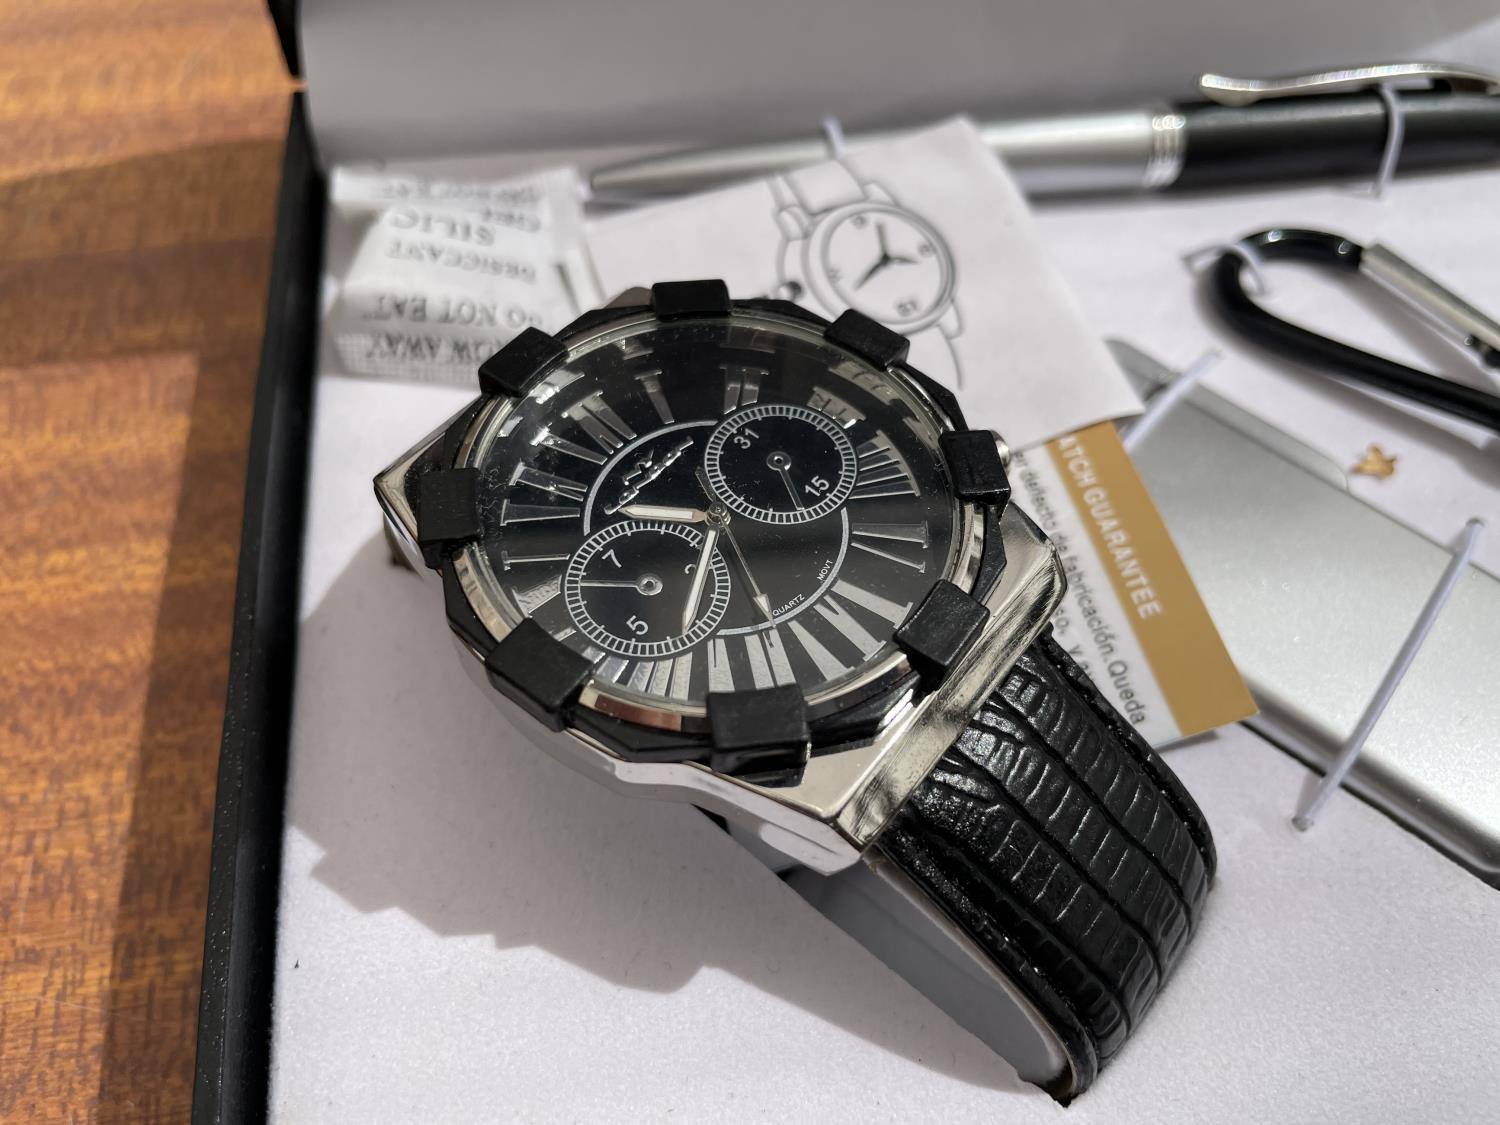 A BOXED NY LONDON WATCH, LIGHTER, PEN AND TORCH SET - Image 3 of 6